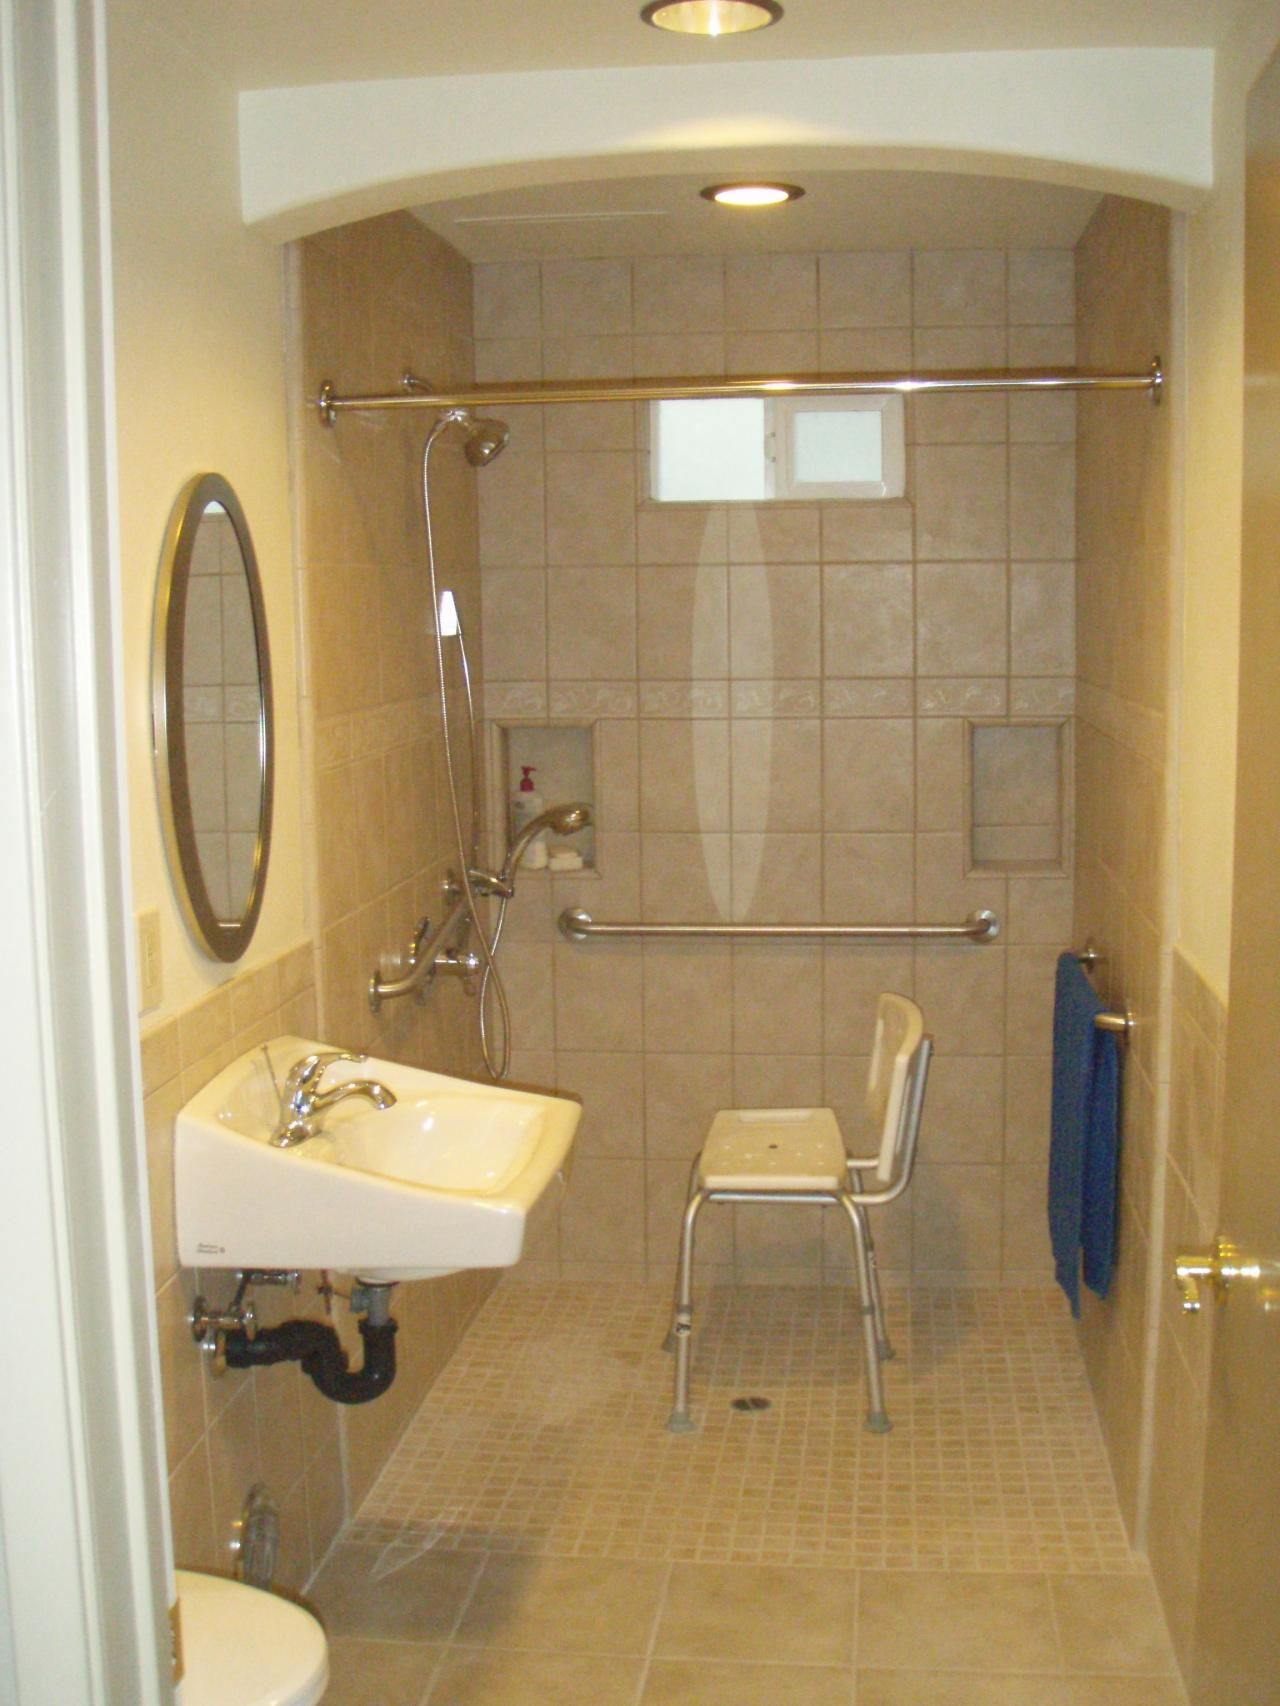 Bathroom remodels for handicapped handicapped bathroom ms hayashi torrance 11 09 bathroom Small bathroom remodel for elderly